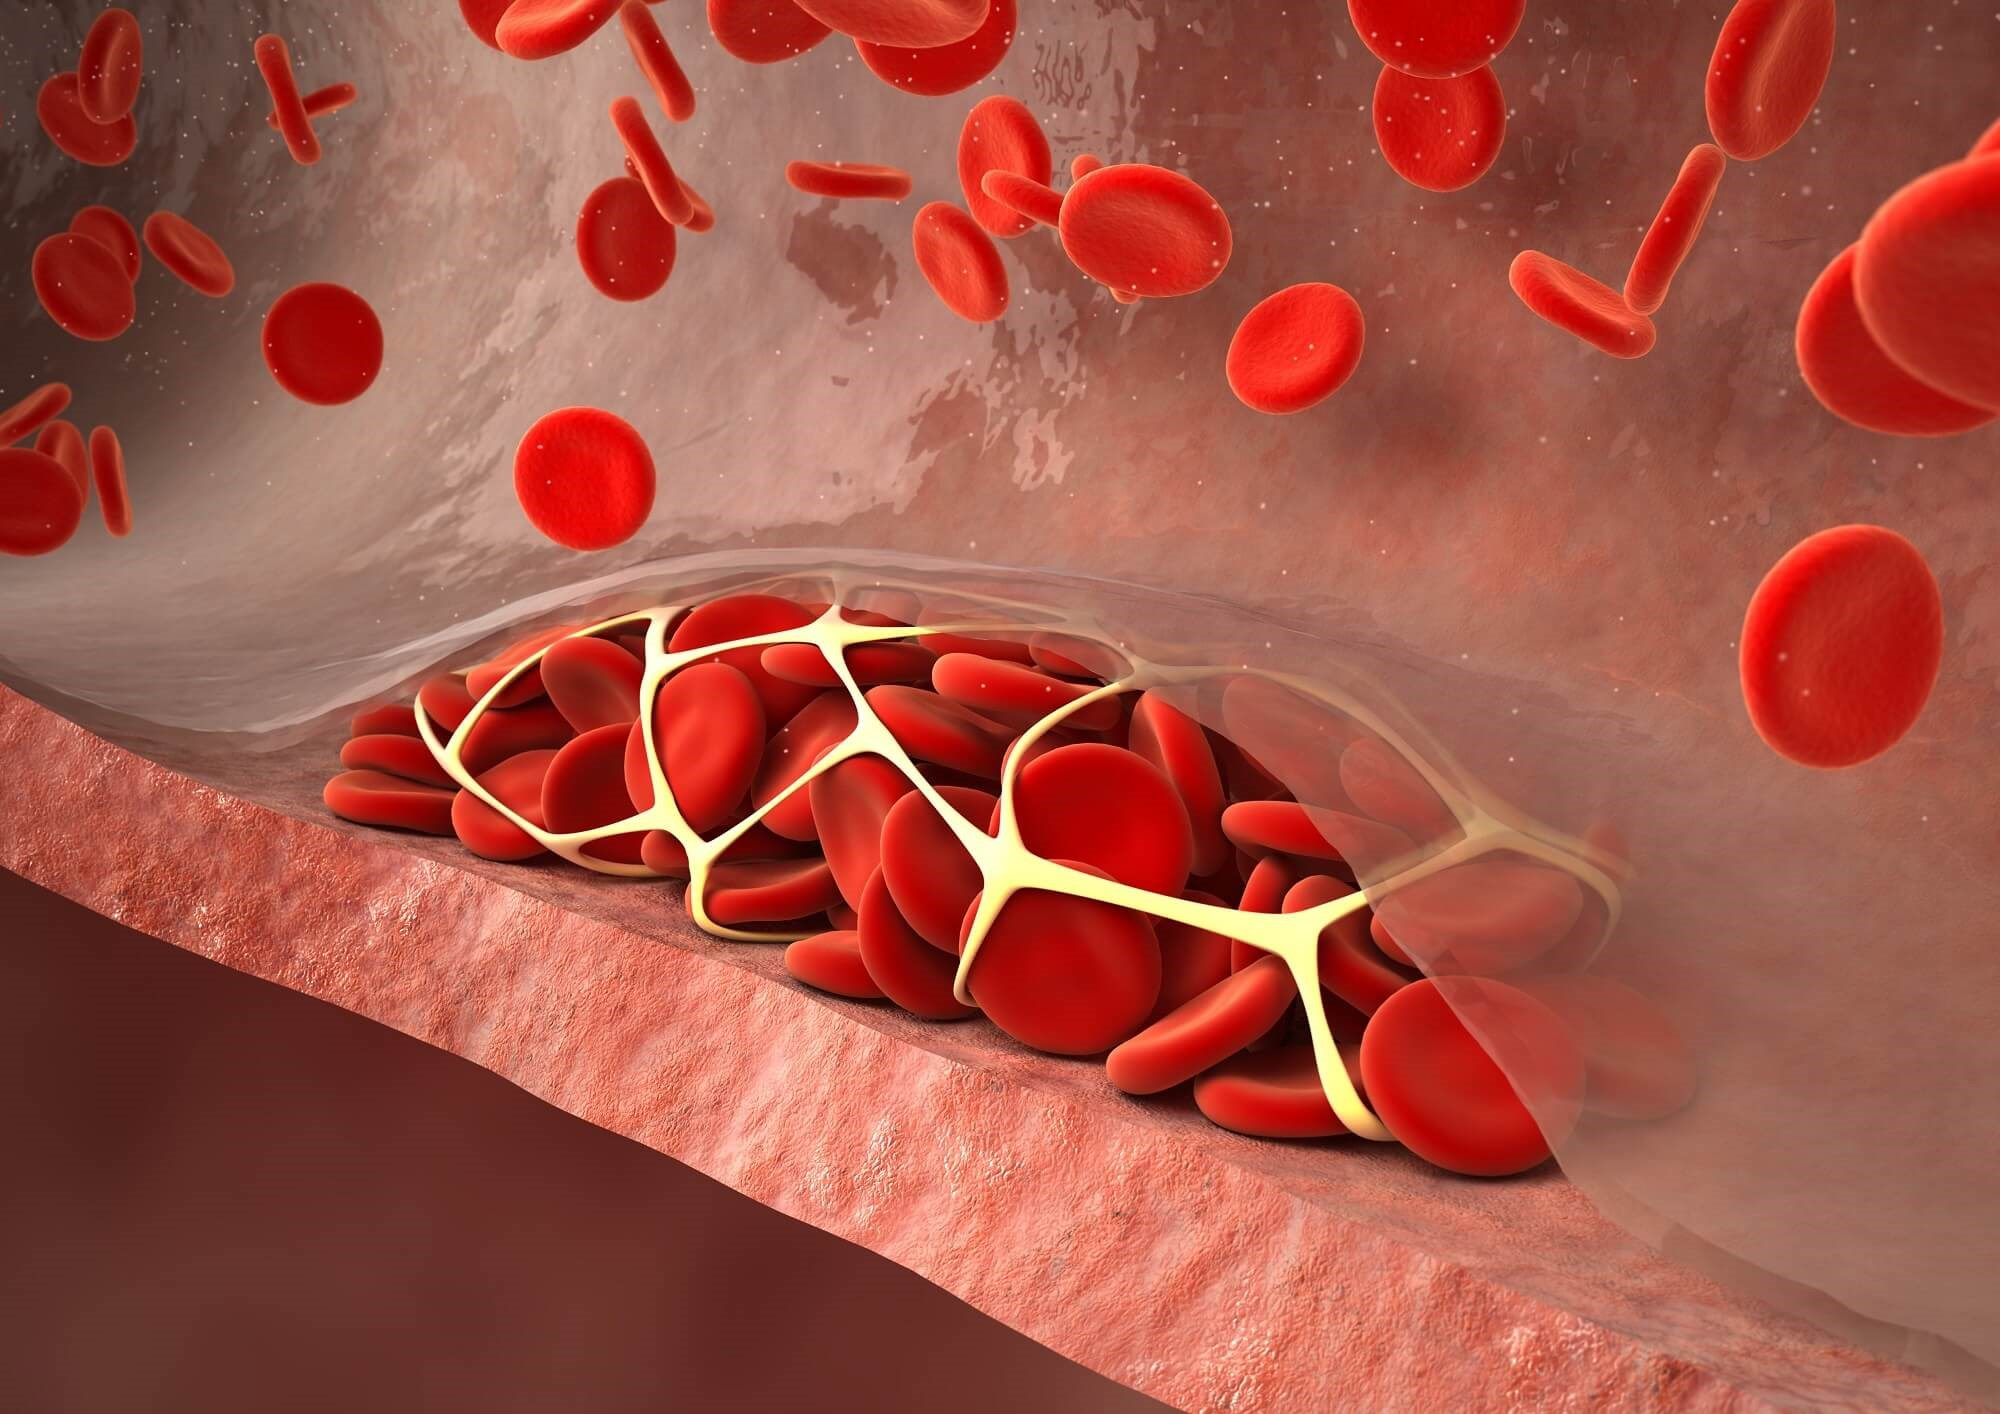 Updated Clinical Practice Guidelines for Venous Thromboembolism: Pregnant and Pediatric Patients